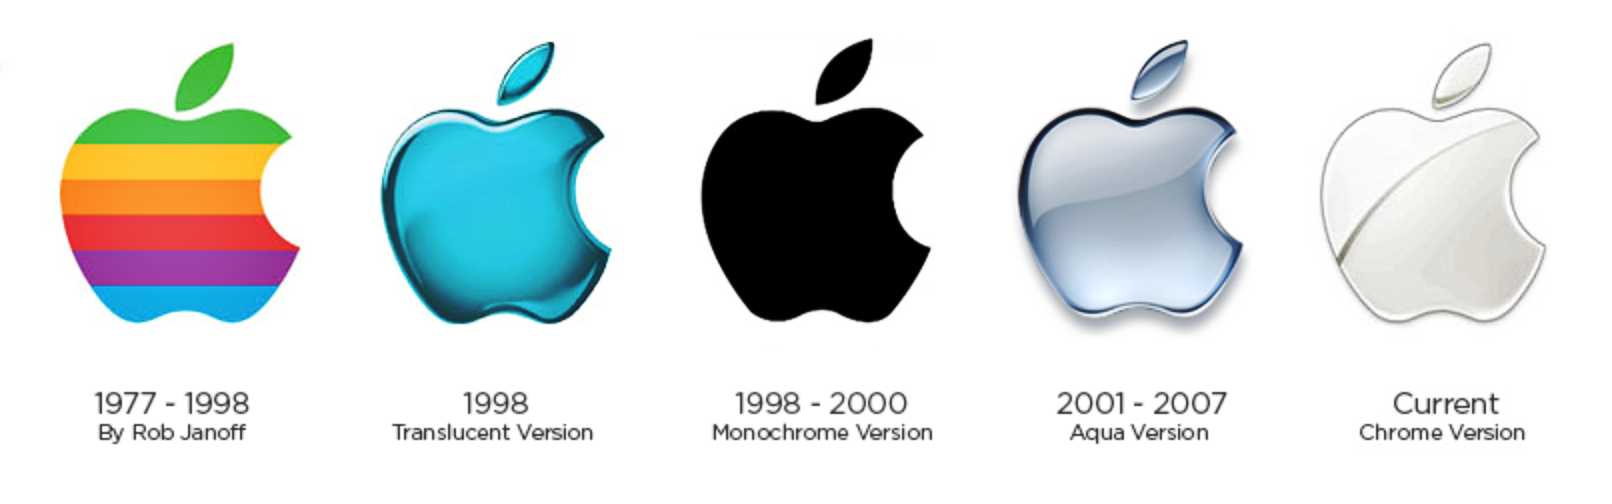 Iphone logo iphone symbol meaning history and evolution iphone logo meaning and history biocorpaavc